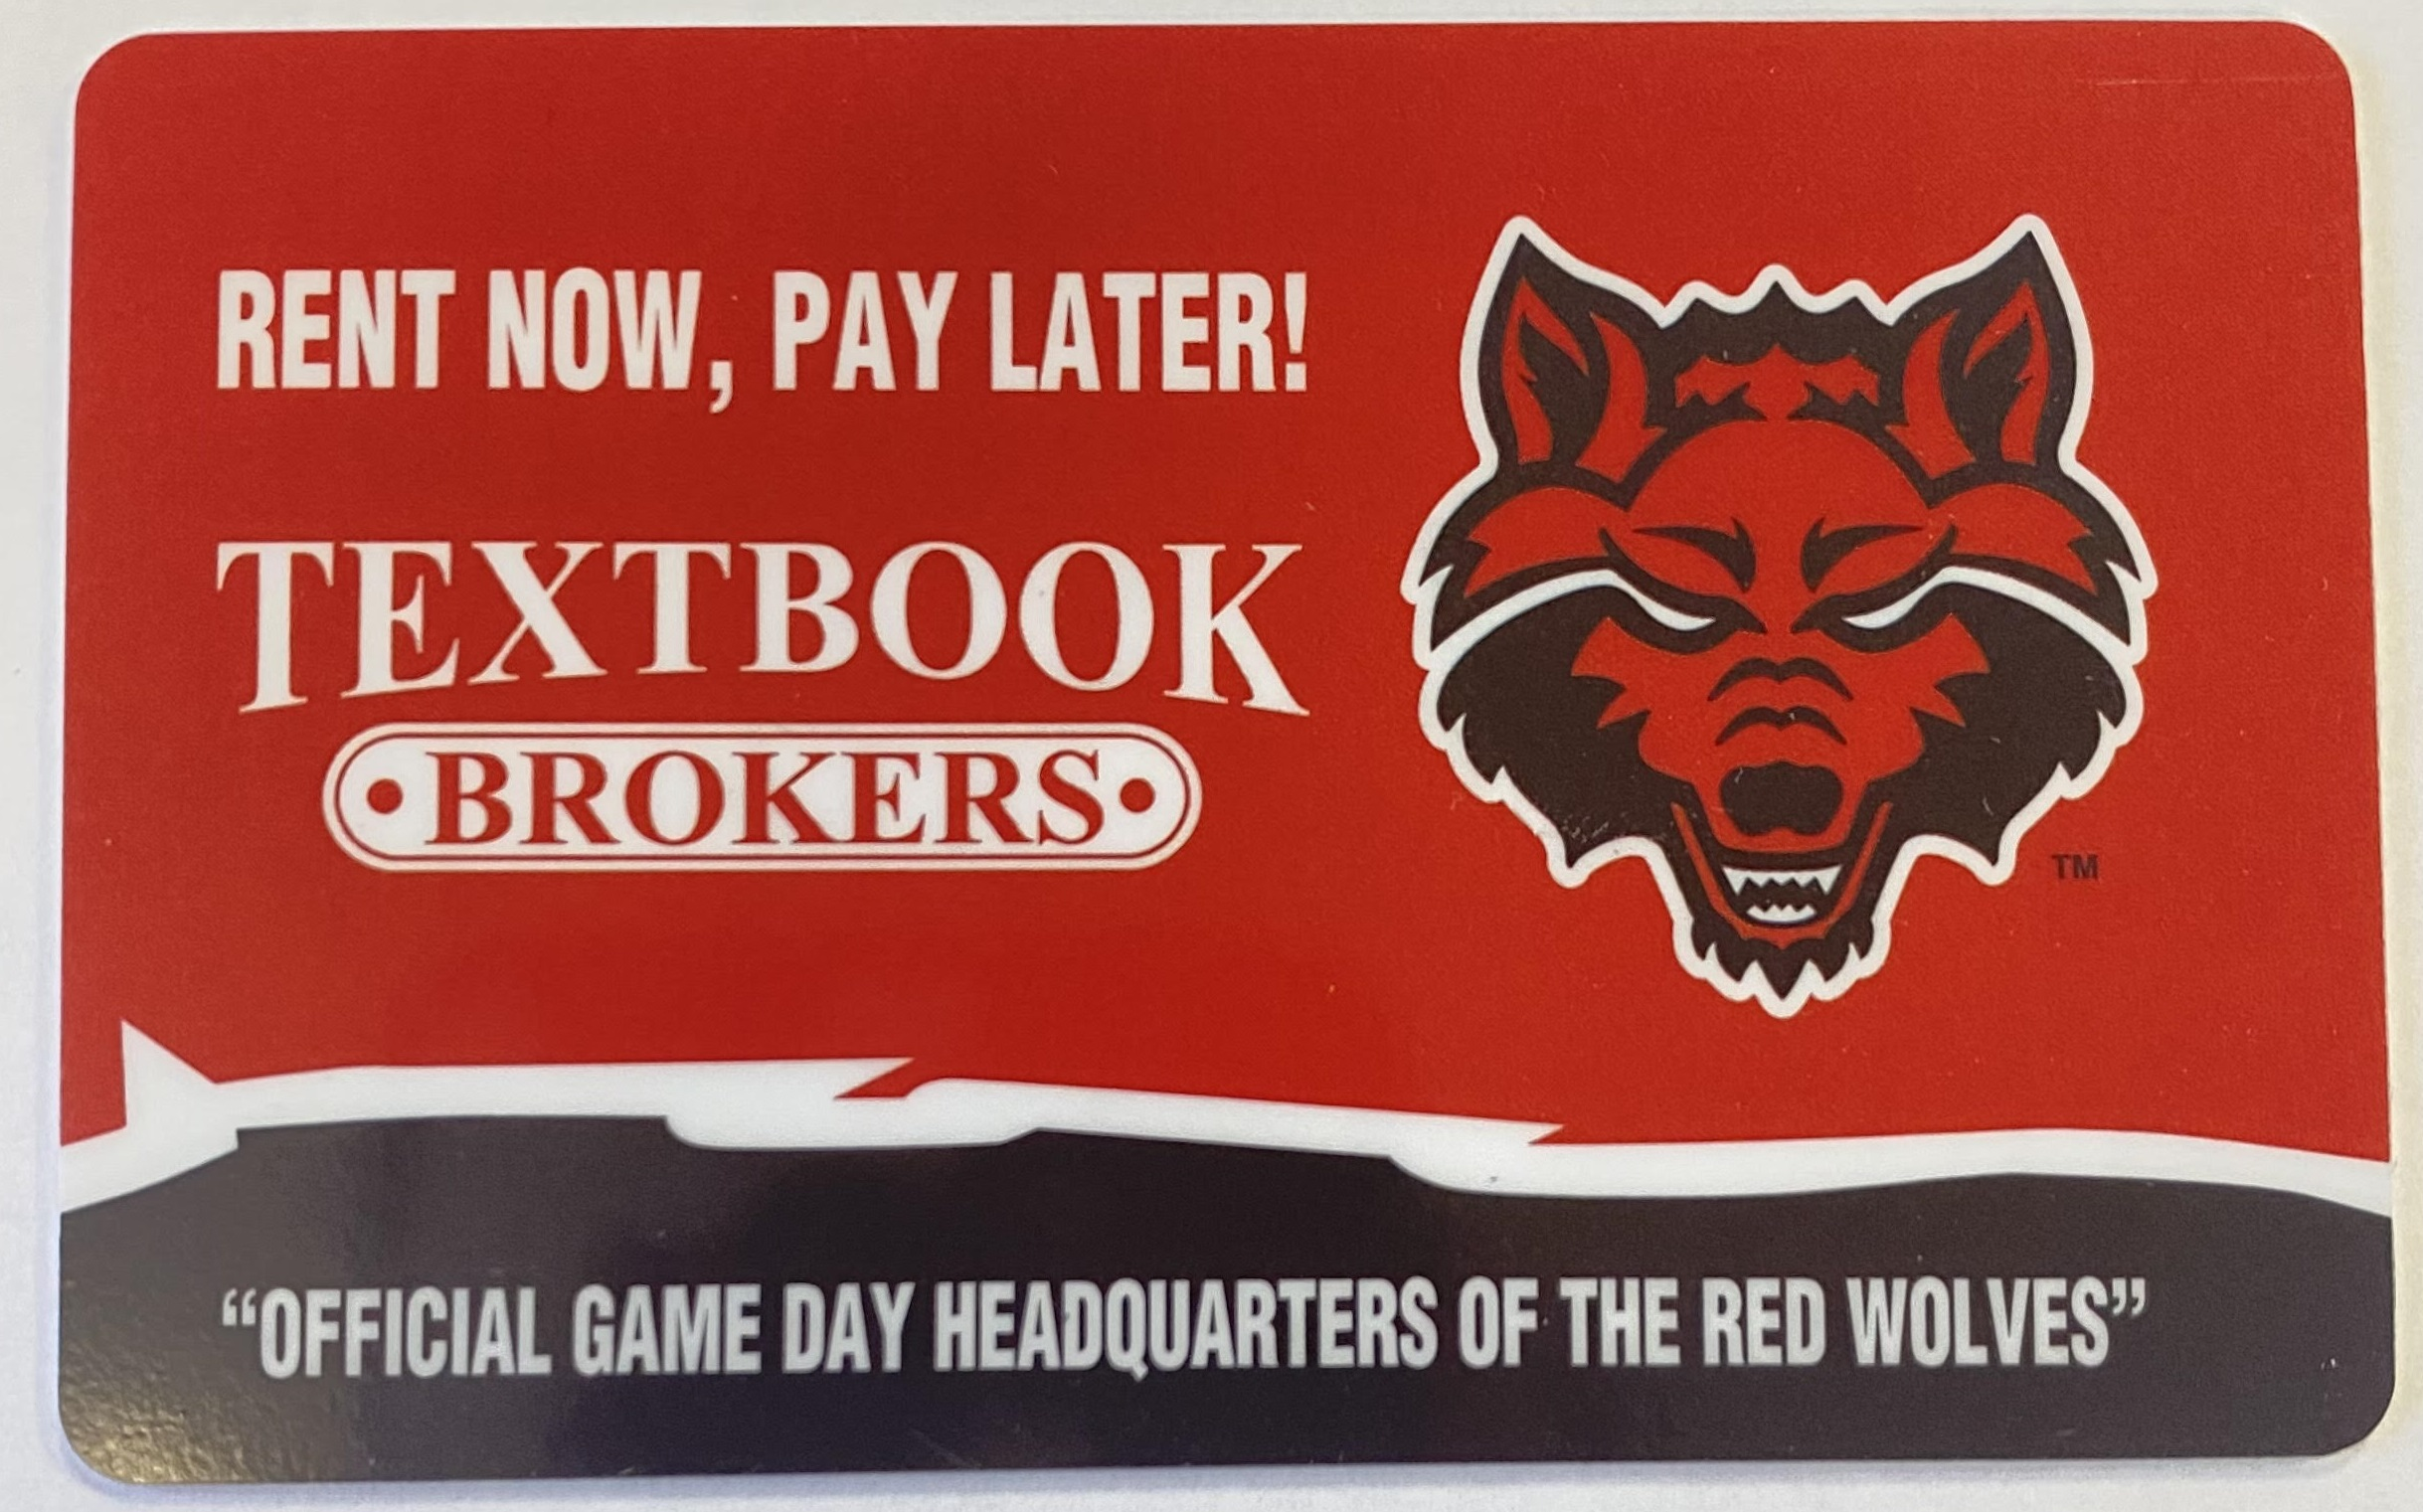 $75.00 Textbook Brokers Gift Card